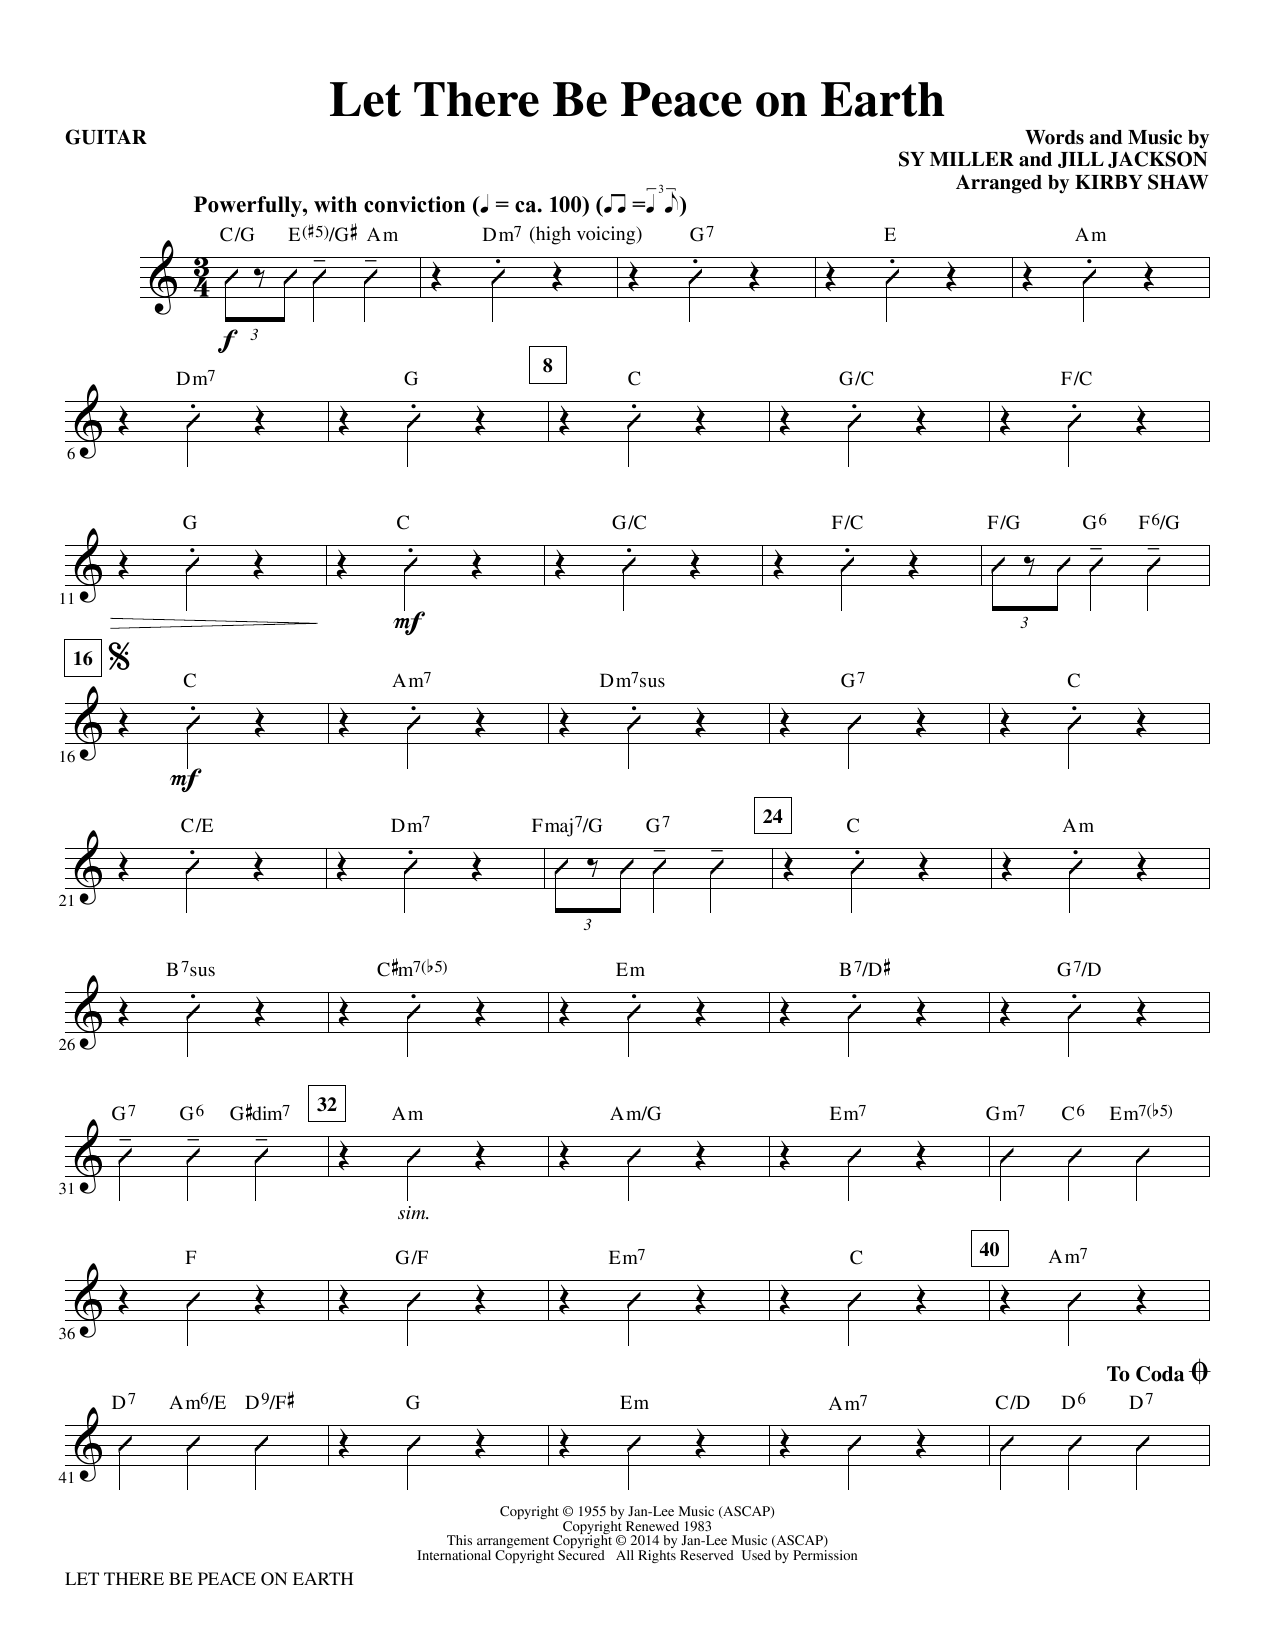 Let There Be Peace on Earth - Guitar Sheet Music